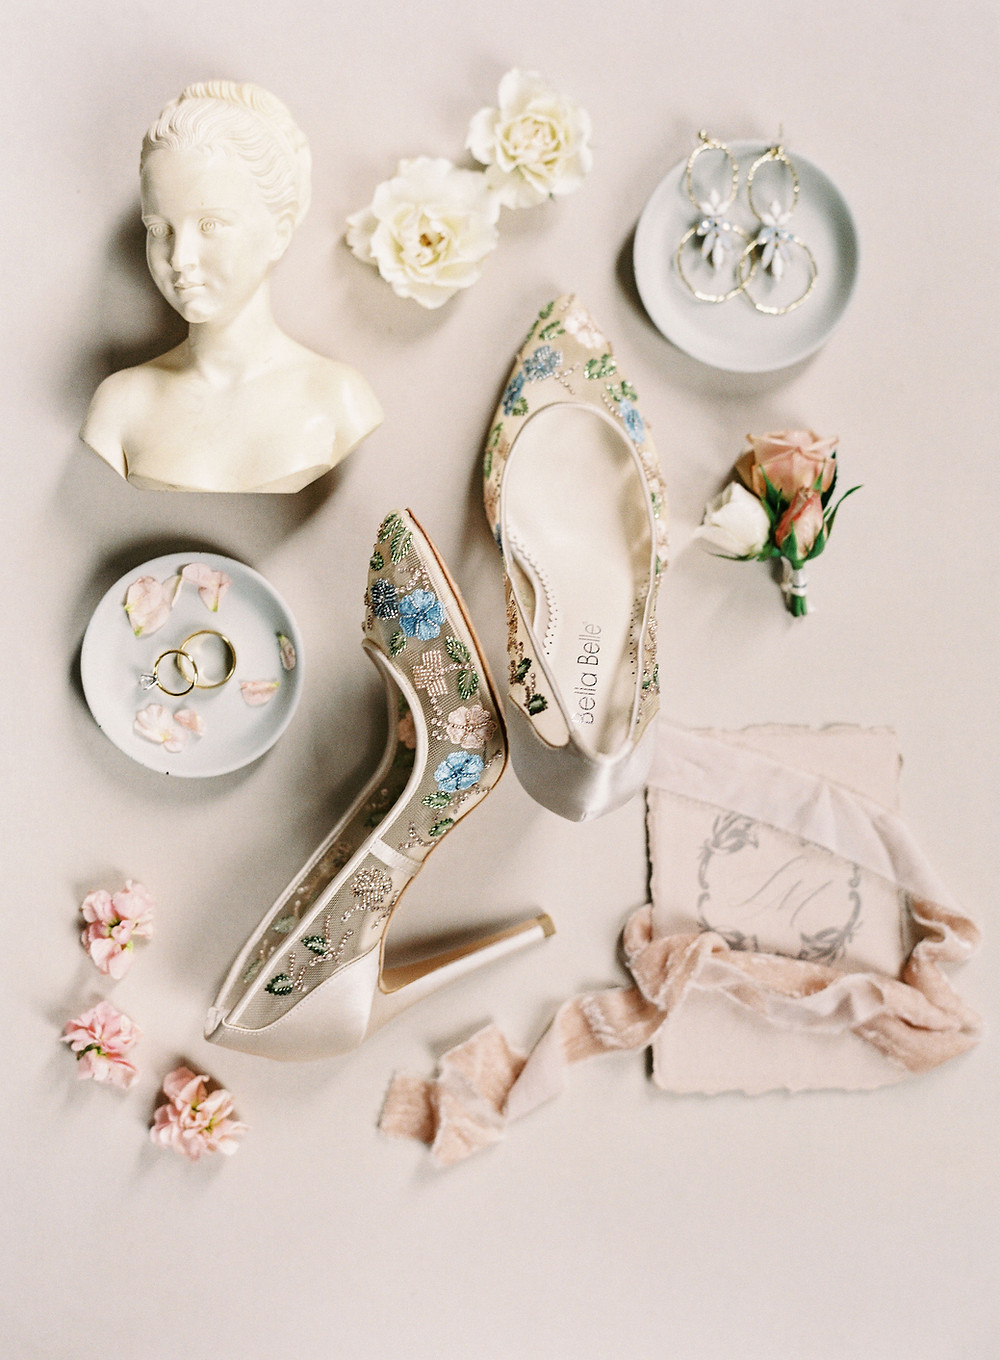 Bridgerton Wedding stationary set, bust, Bella belle heels